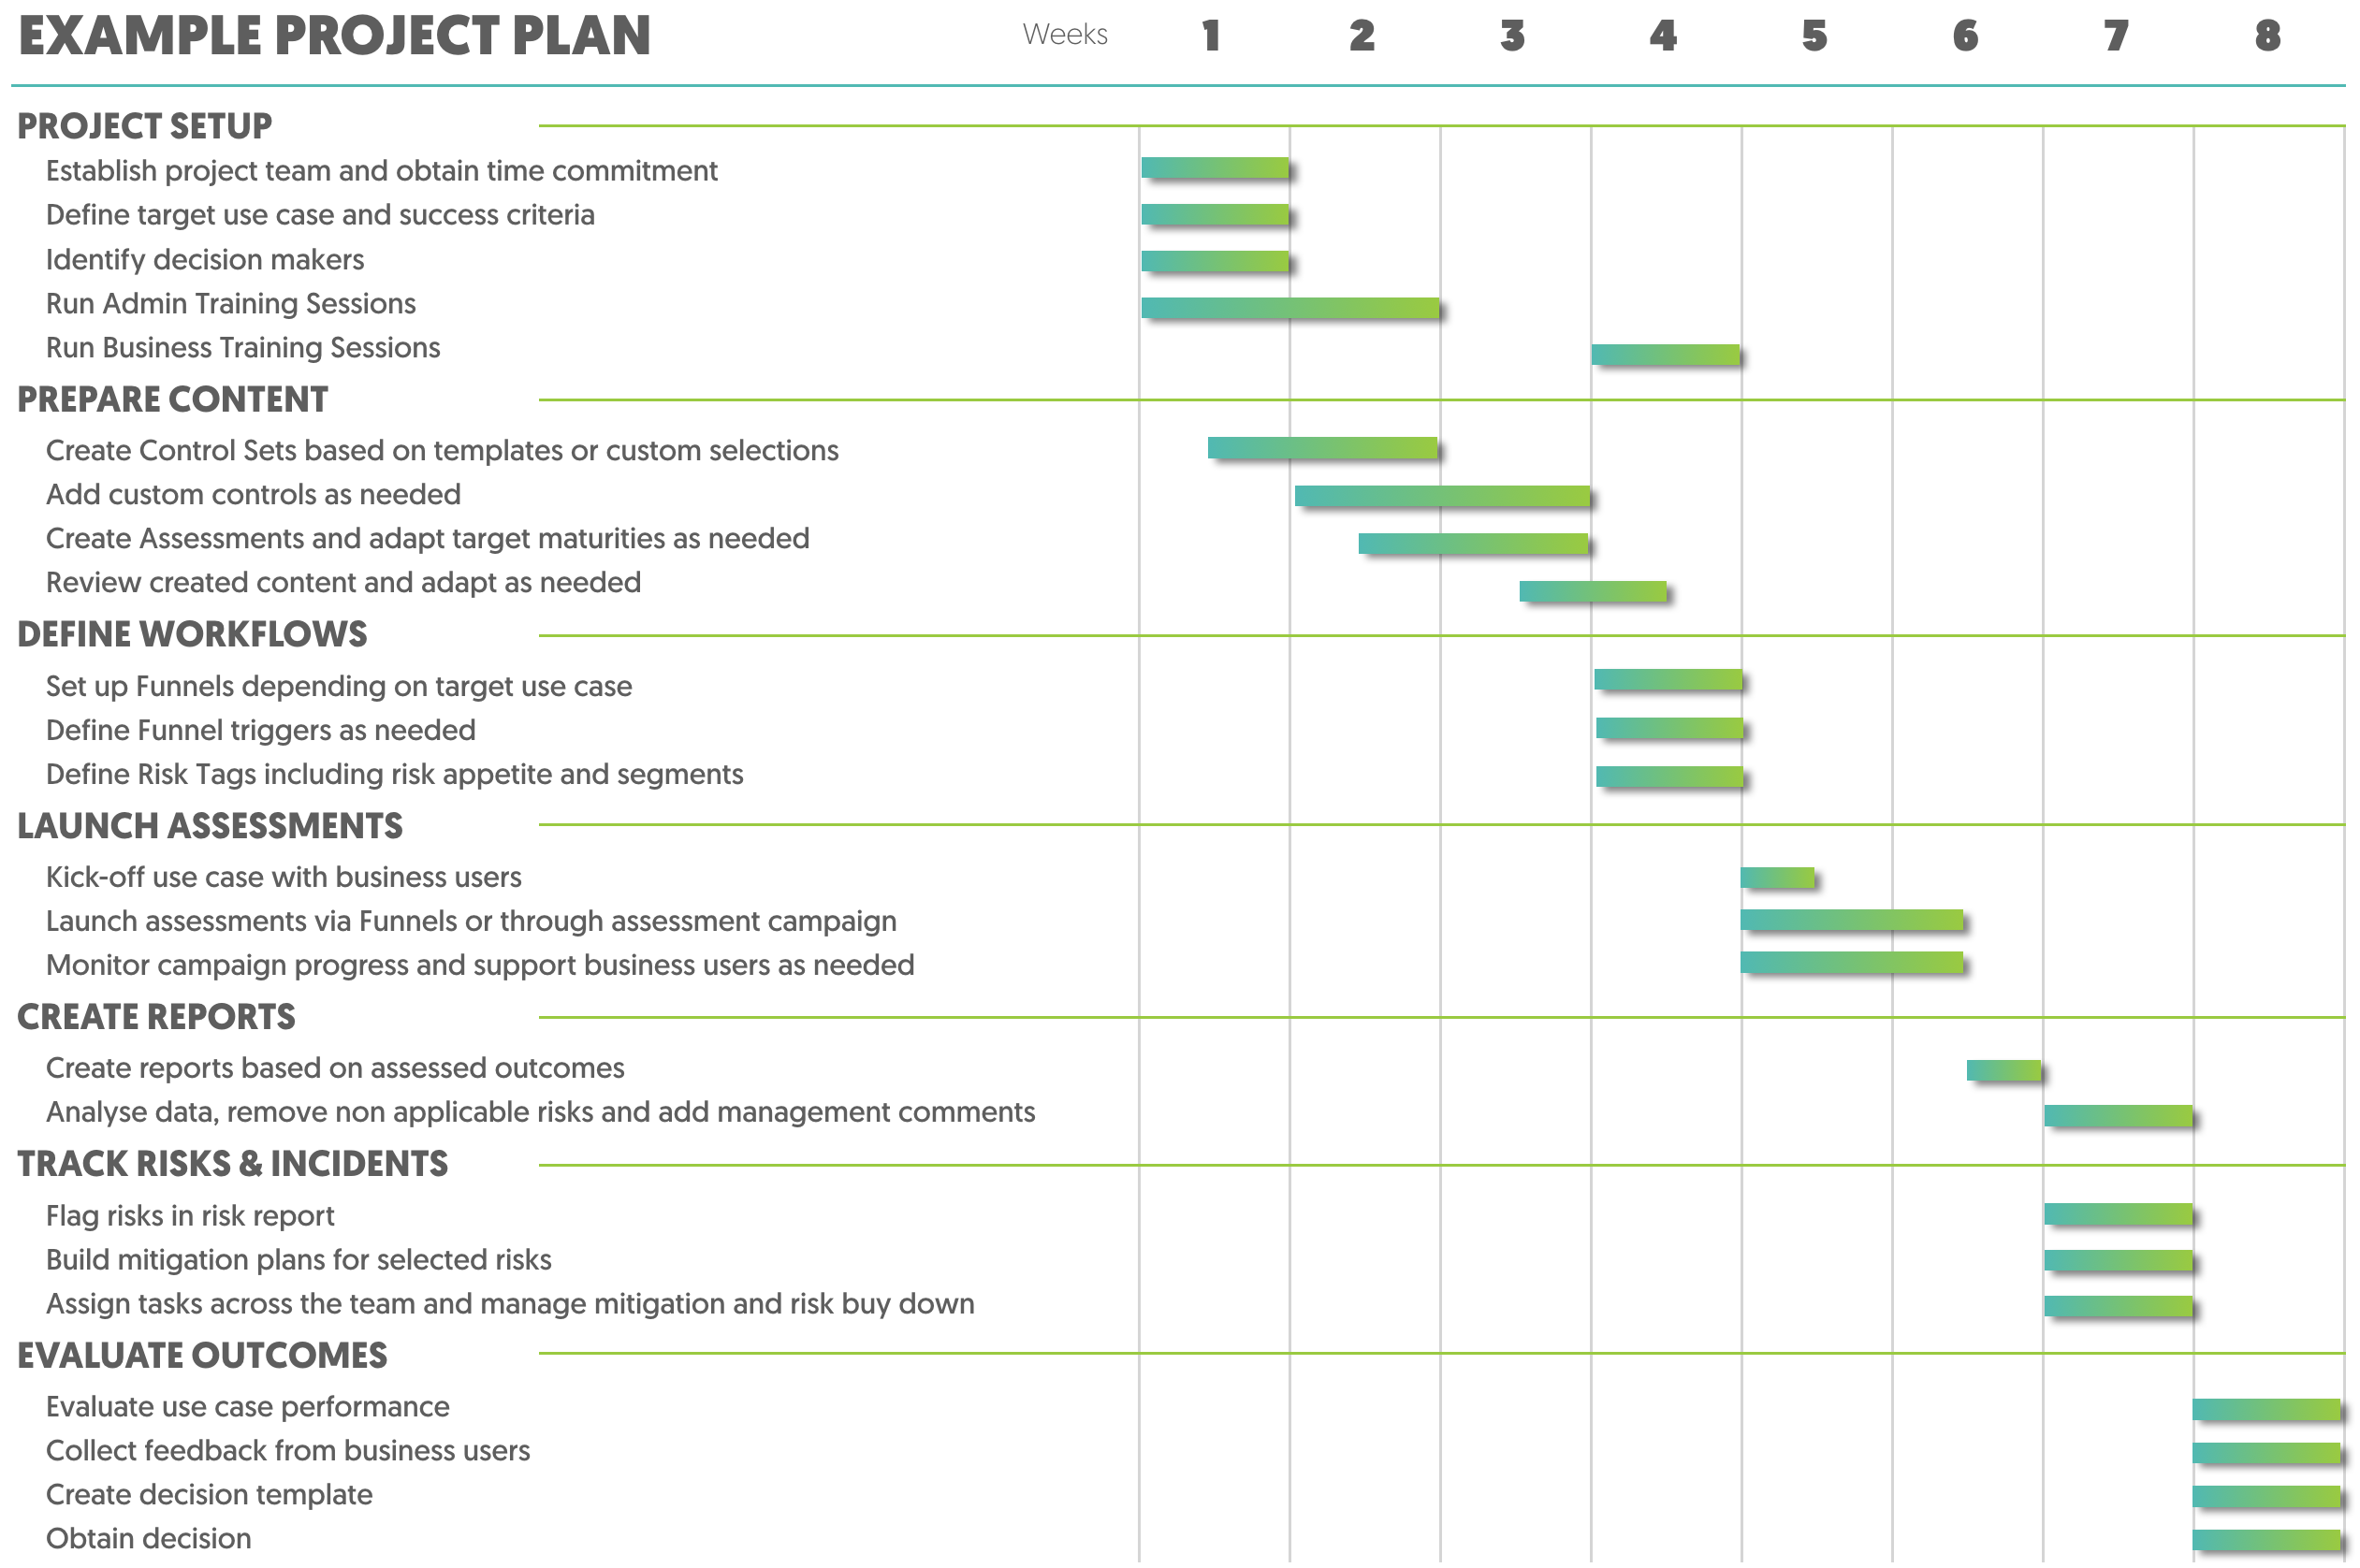 PoC Project Plan